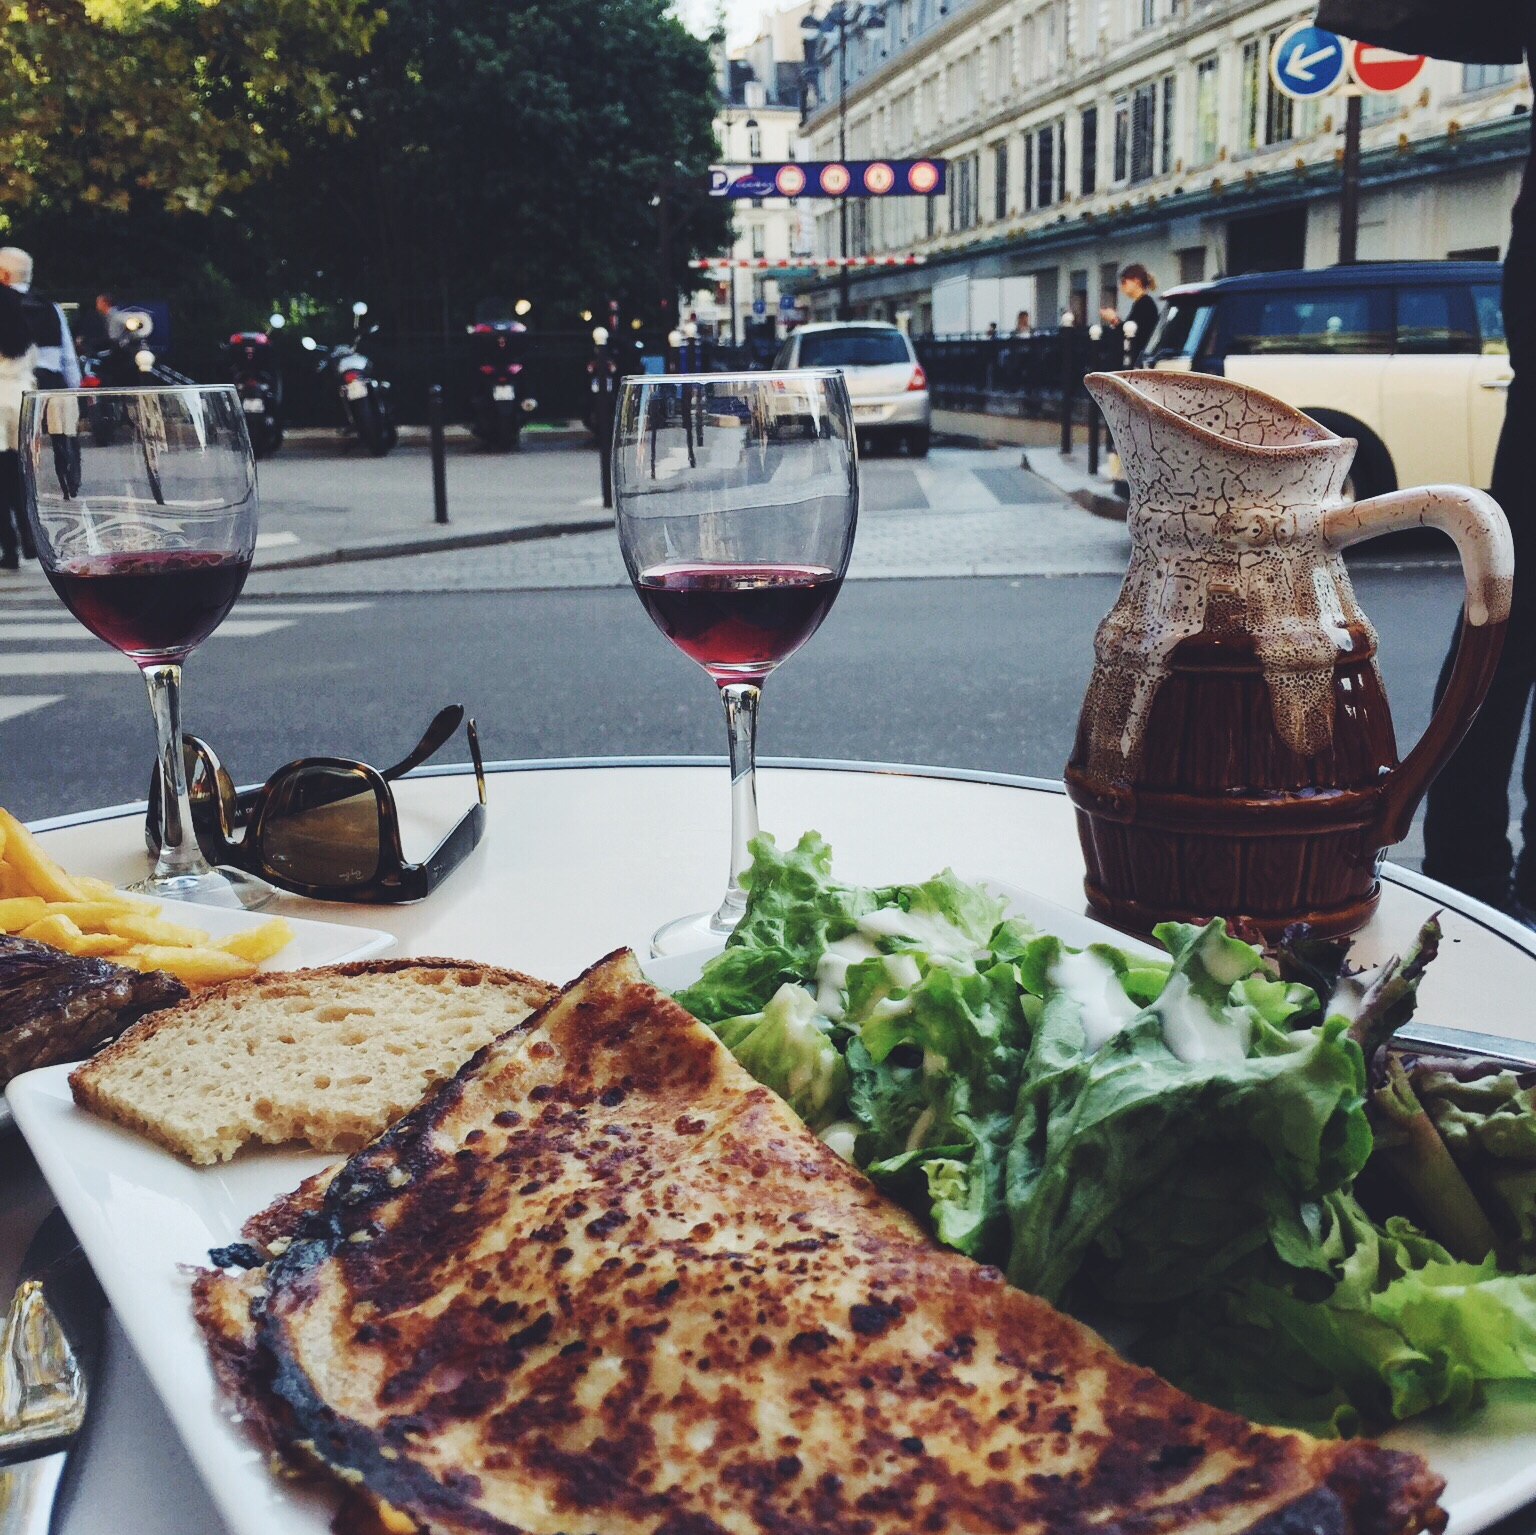 The best  croque monsieur  at Au Babylon Cafe.